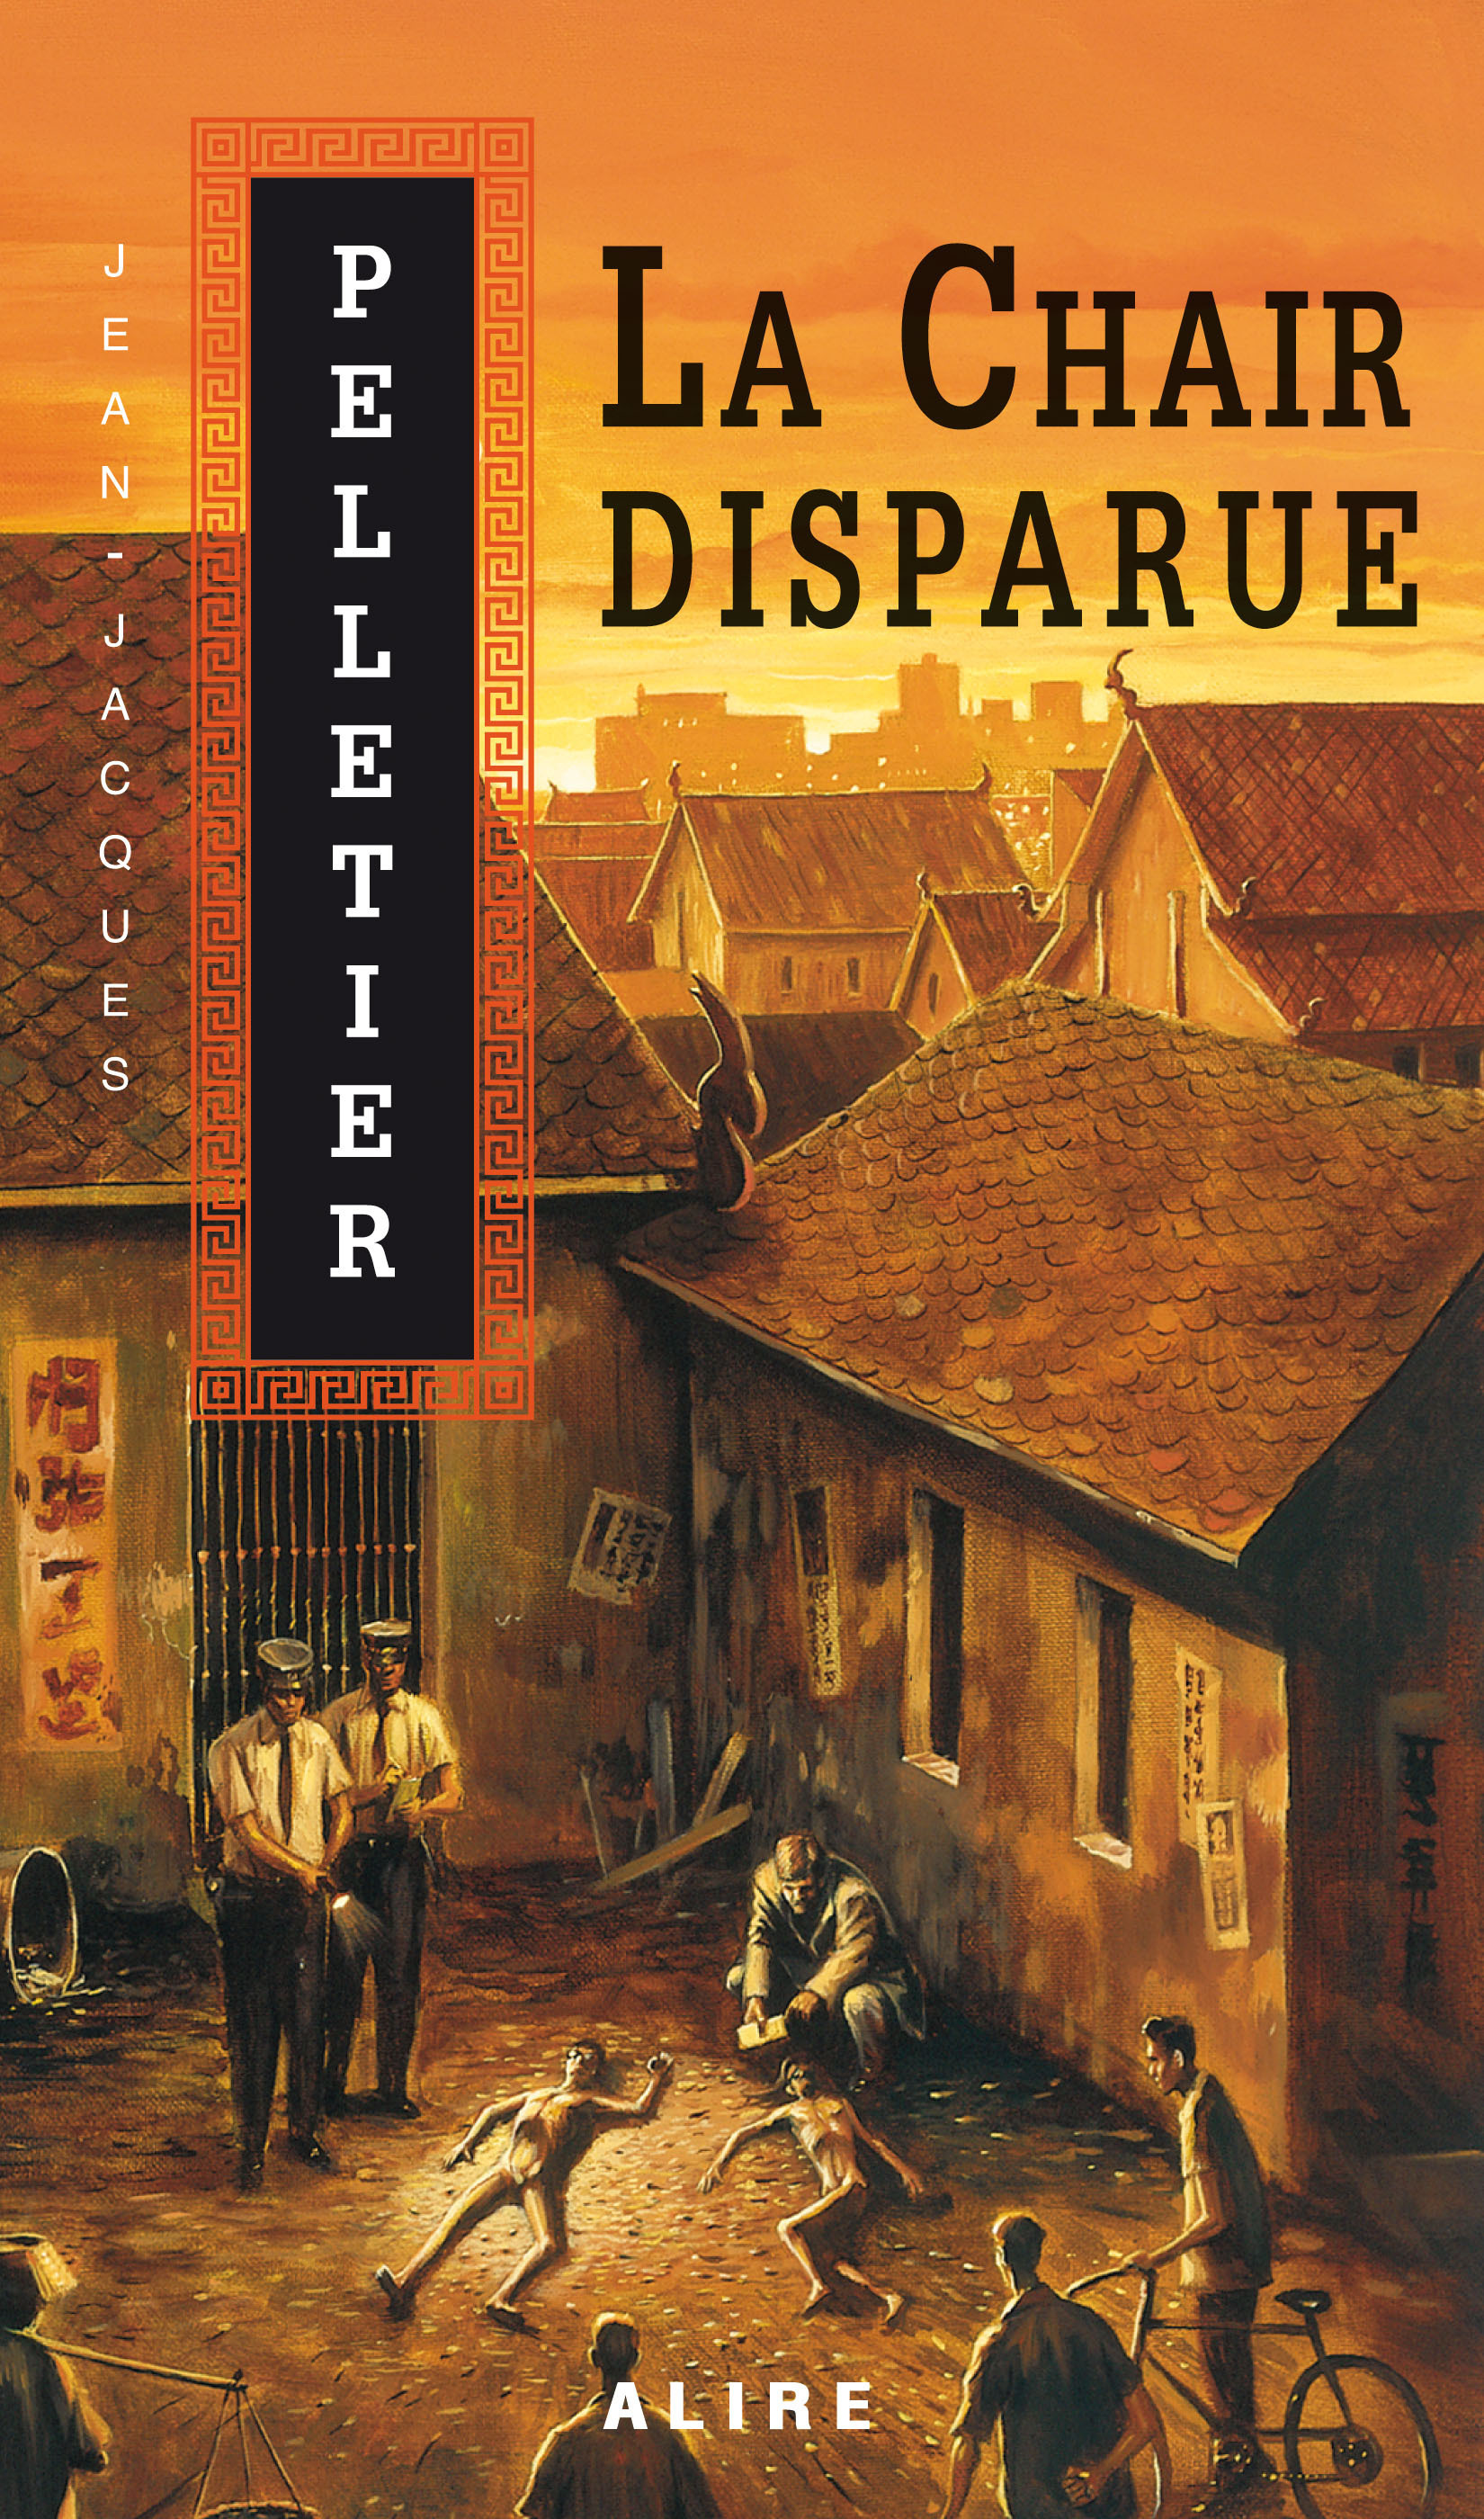 Couverture : La chair disparue  T.1 Jean-jacques Pelletier